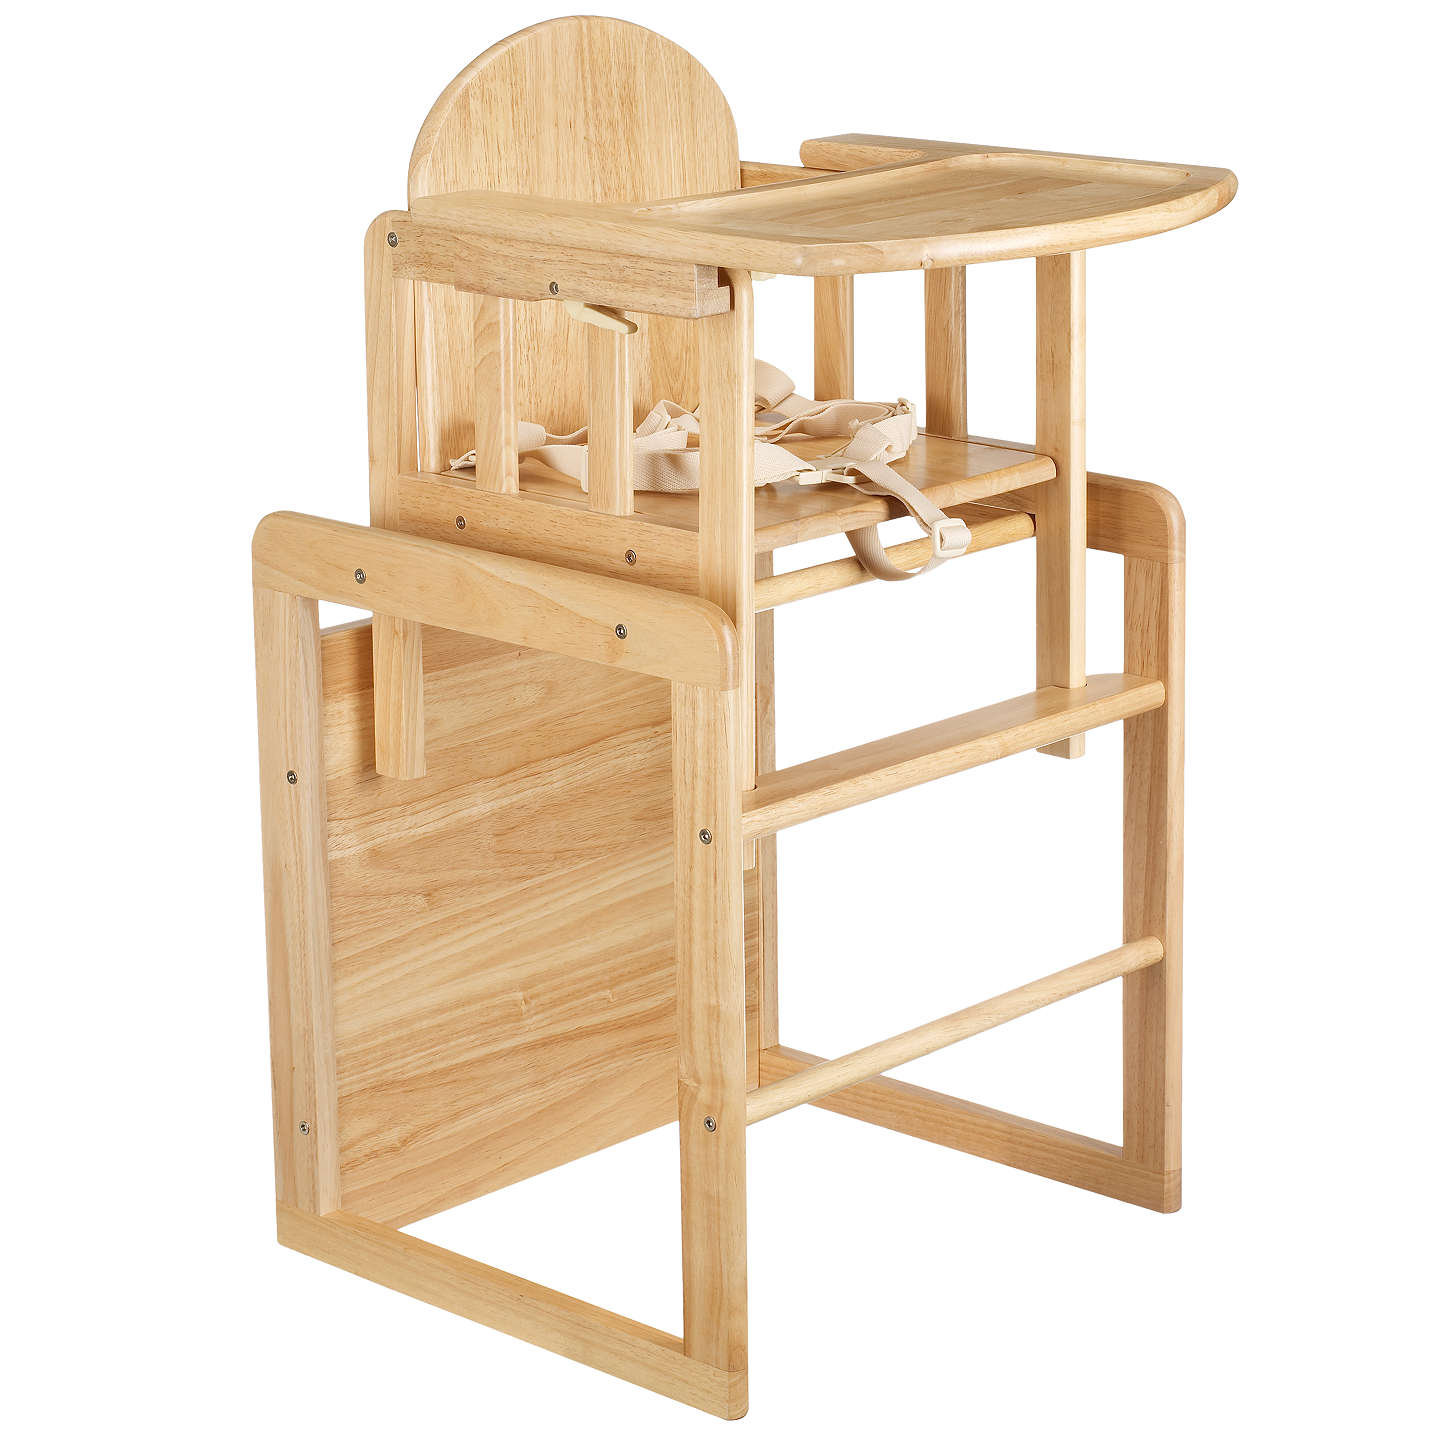 Wood Combo Chair: East Coast Combination Wooden Highchair At John Lewis